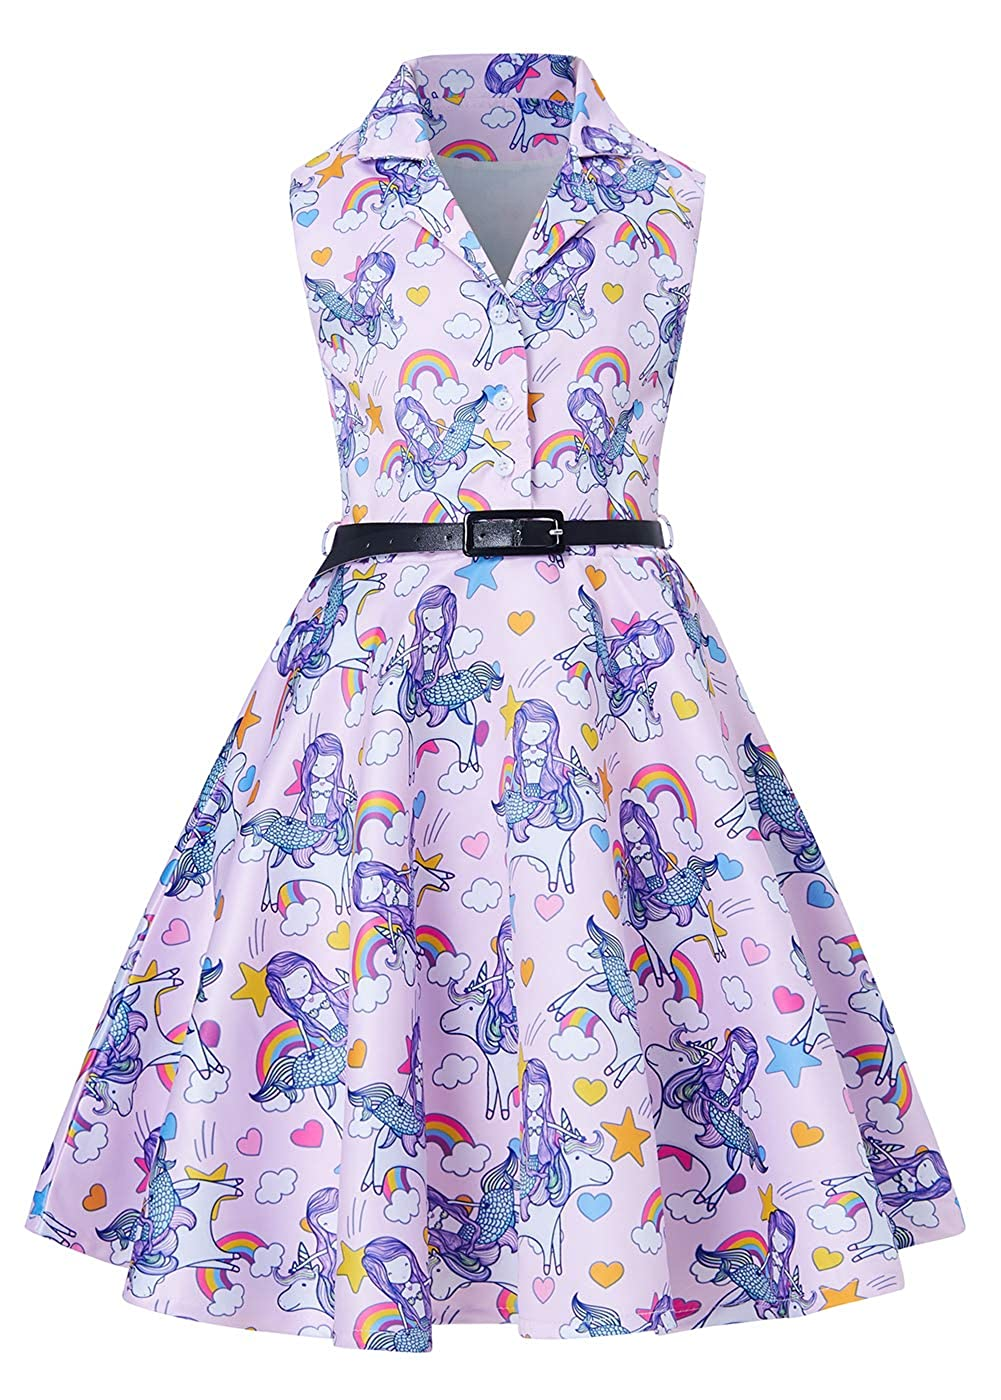 RAISEVERN Spring Summer Girls Sleeveless A Line Vintage Retro Rockabilly Dress Evening Party Form Wedding Cocktail Ballet Occasion Swing Midi Floral Dresses with Belt